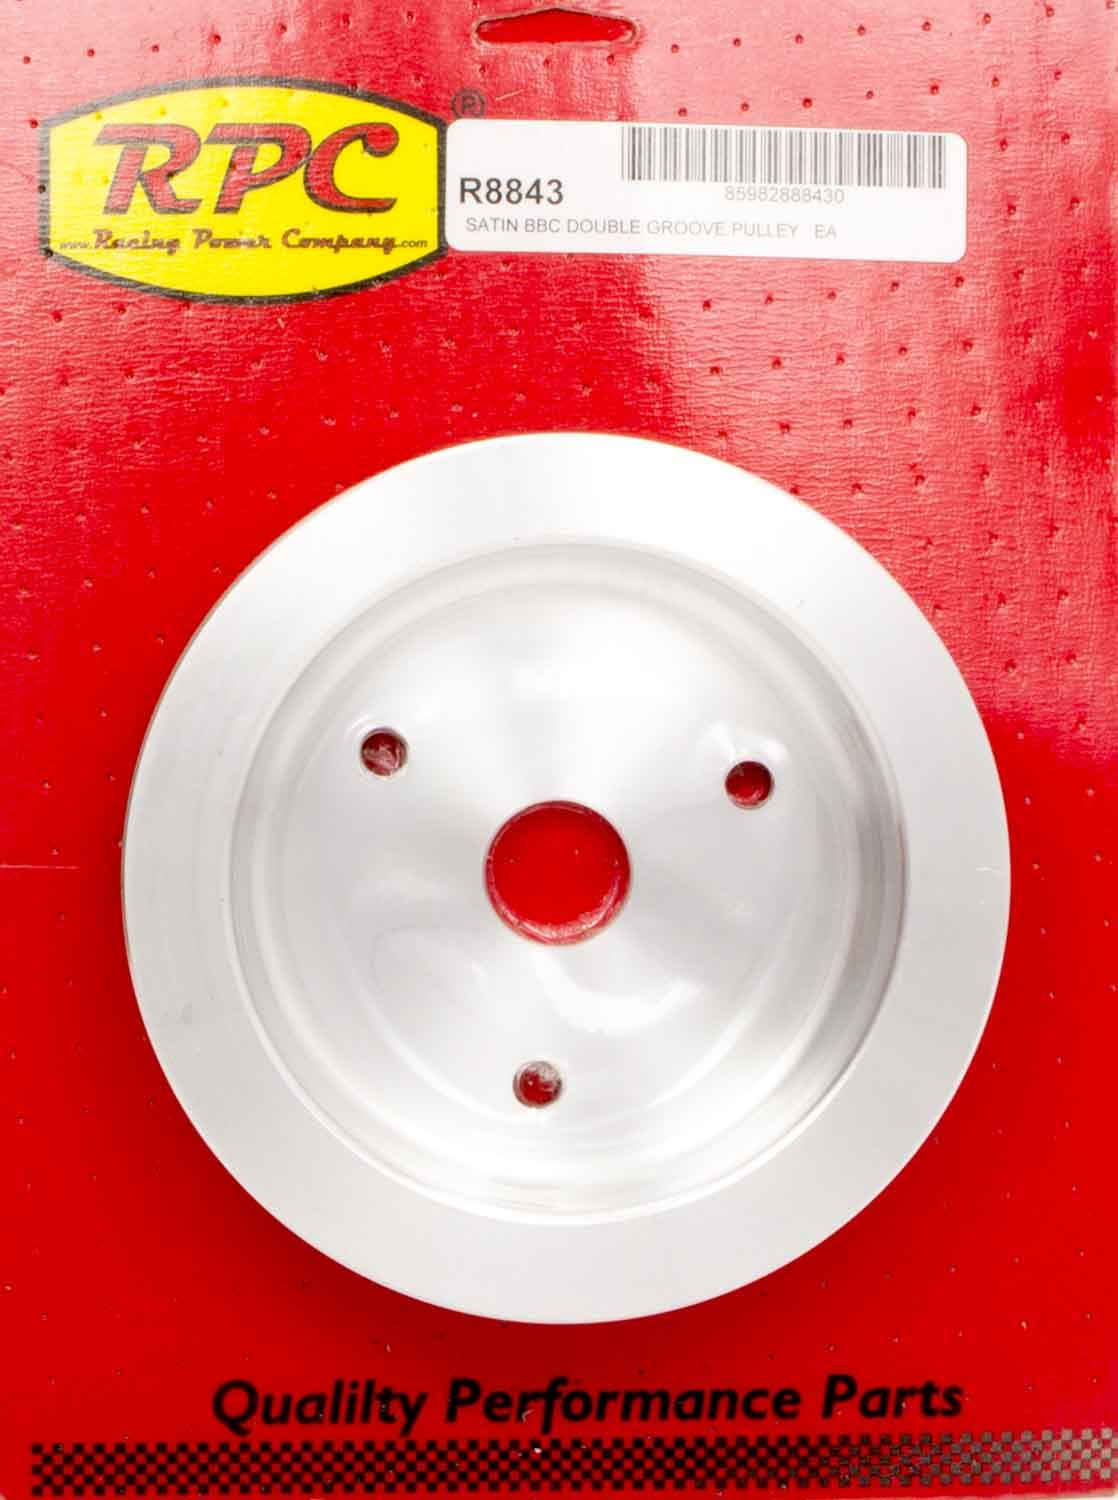 Racing Power Co-packaged BBC SWP 2 Groove Lower Pulley Satin